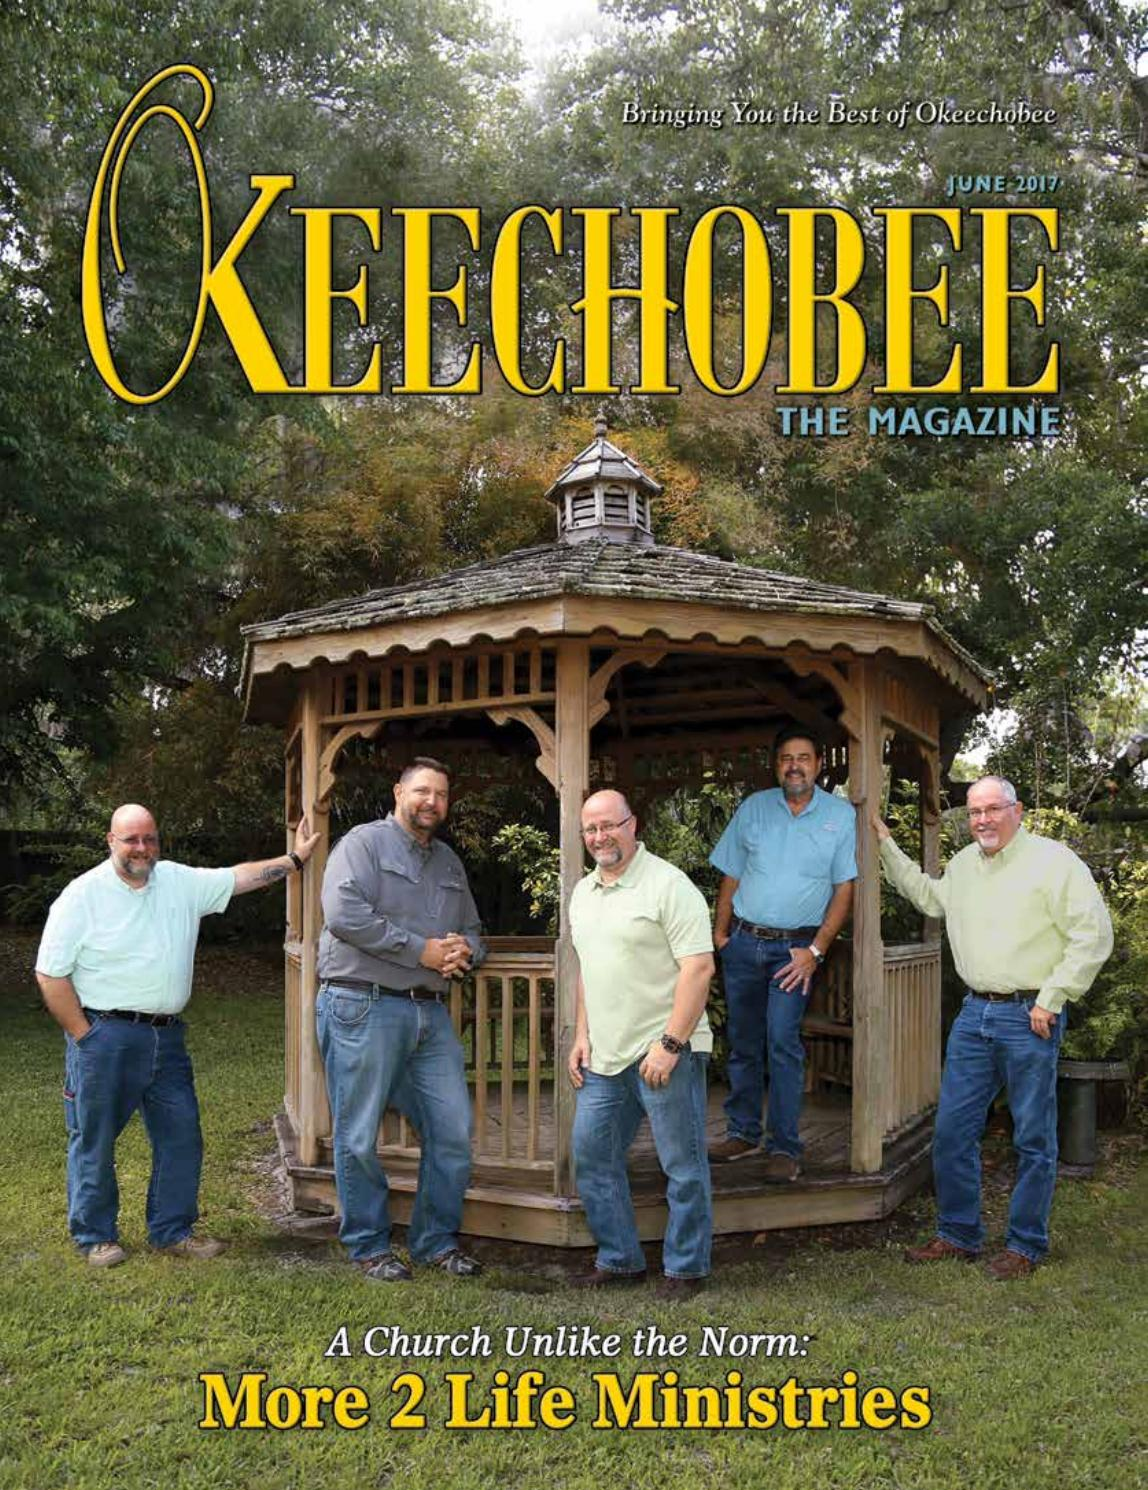 Okeechobee The Magazine June 2017 By Issuu Computer Circuit Board Stock Image T356 0546 Science Photo Library